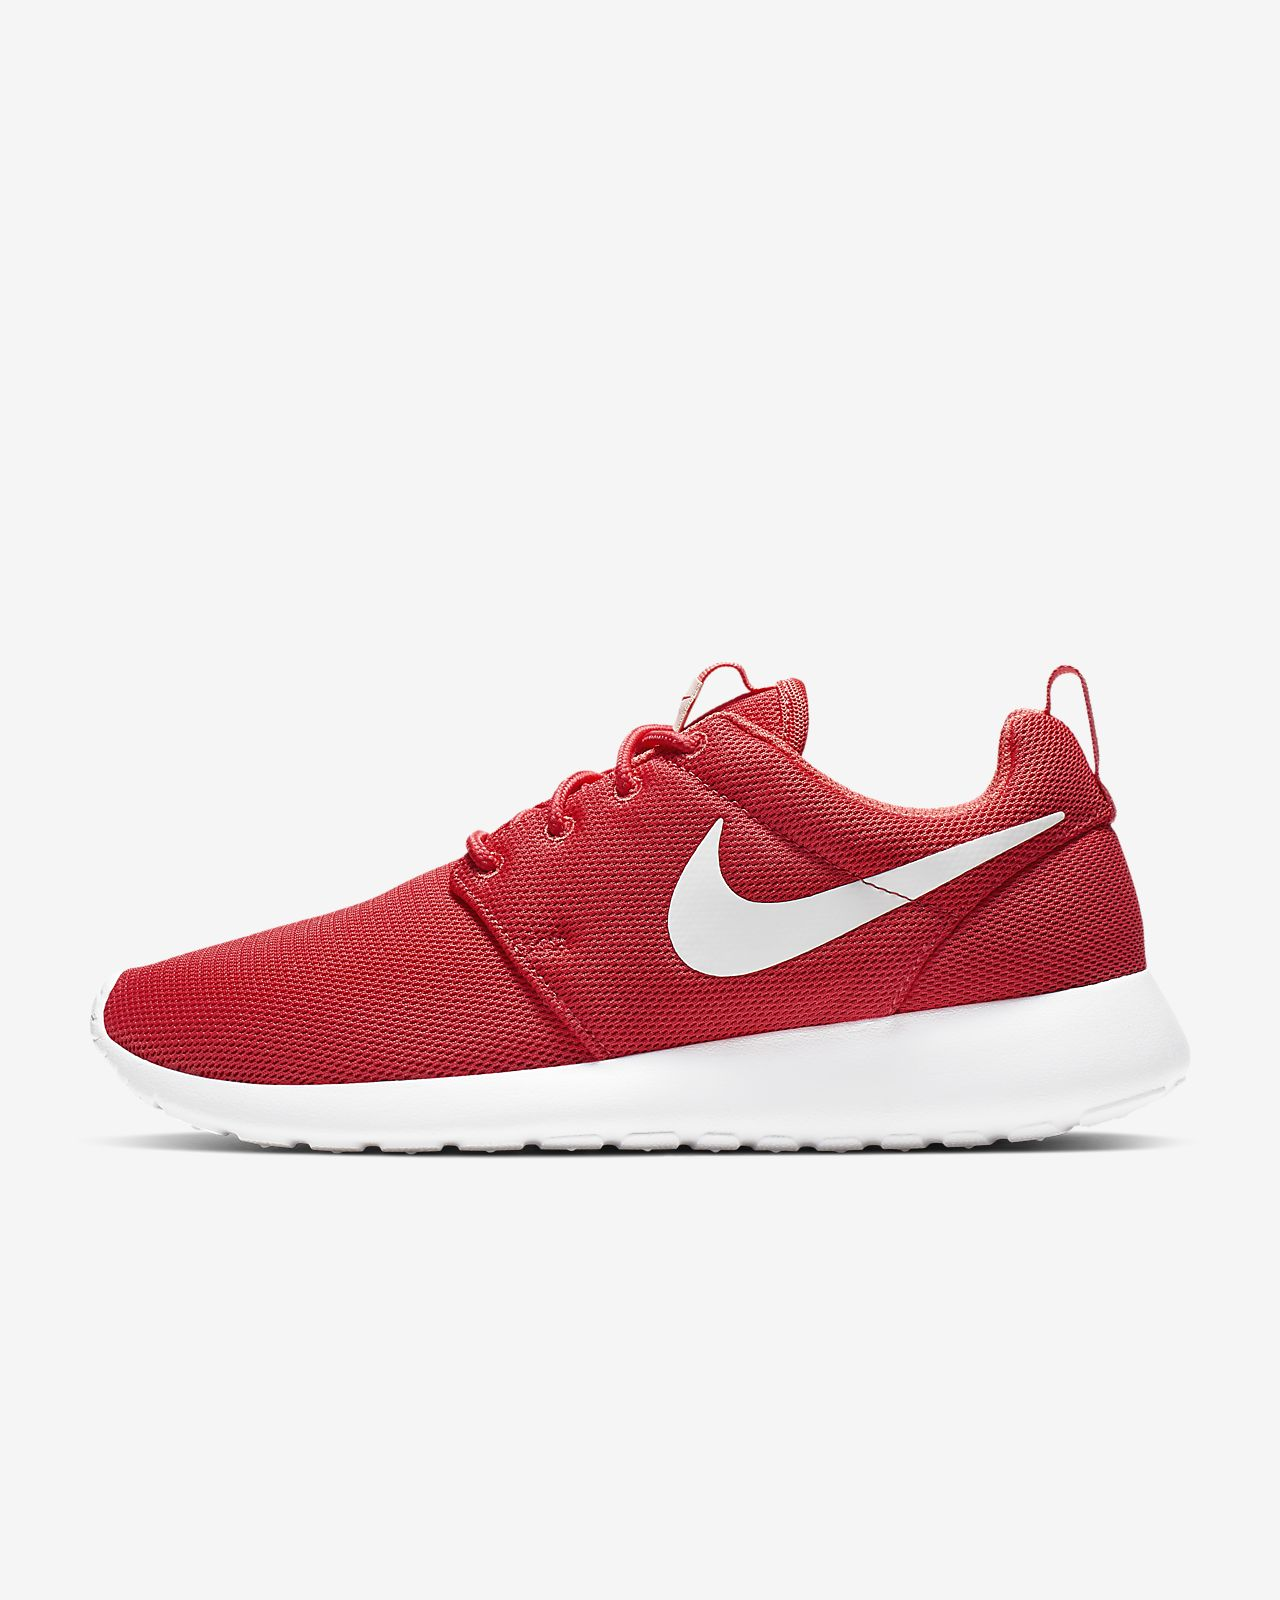 premium selection c8654 0d61d ... Nike Roshe One Women s Shoe